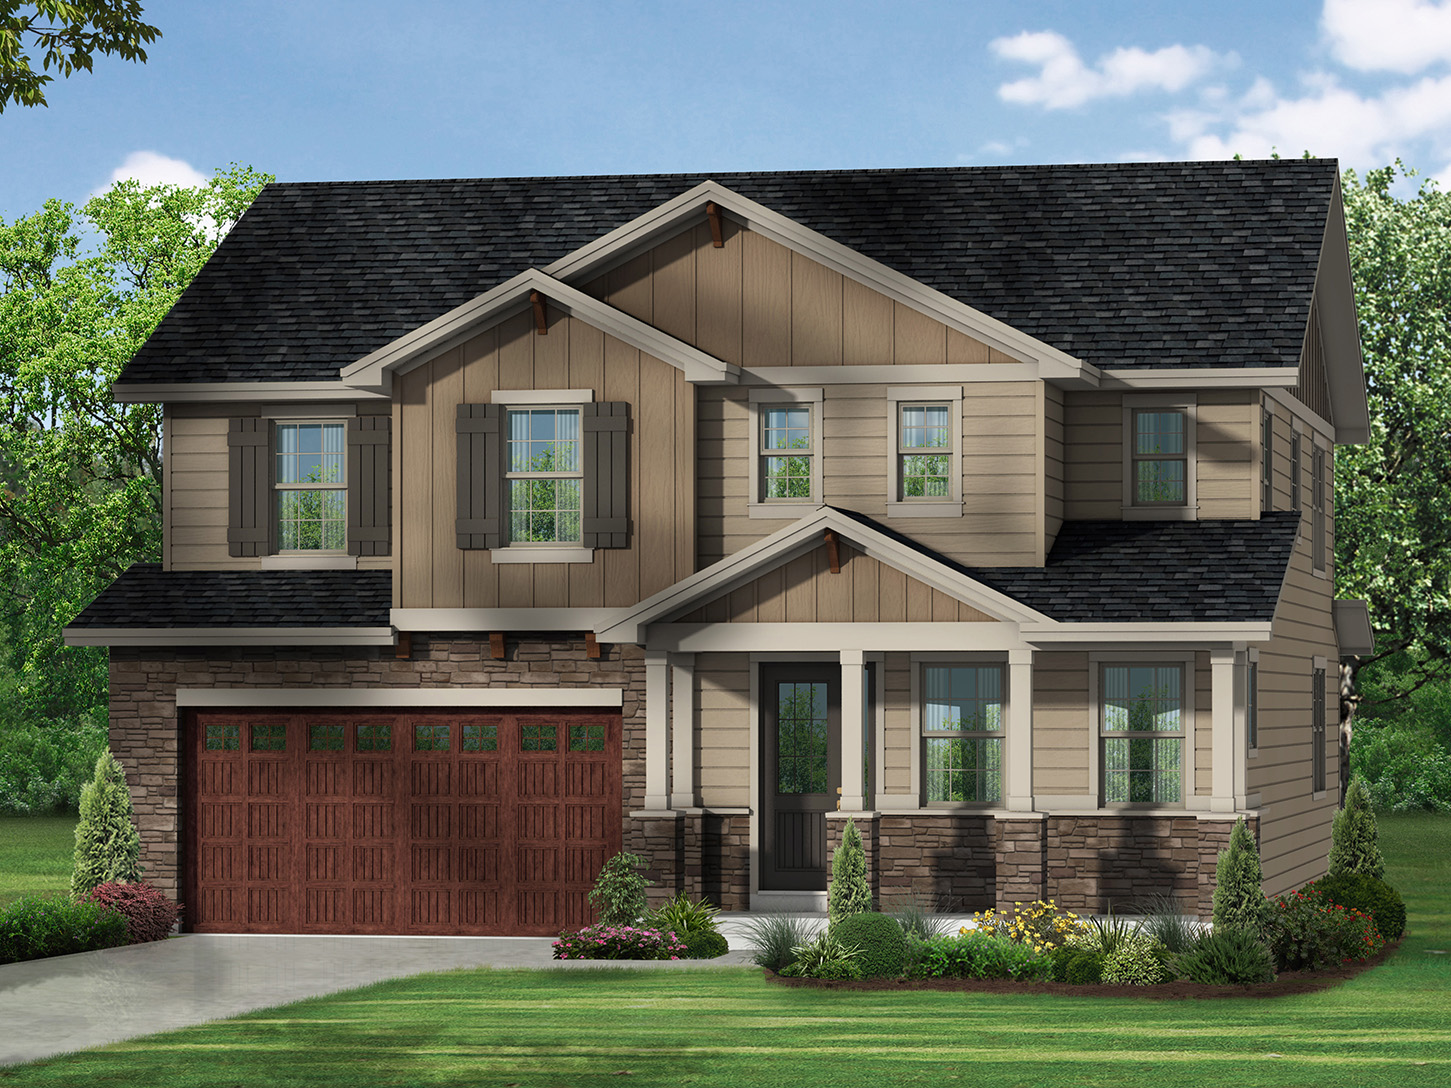 02-montrose-fort_collins-elevation_b-fox_grove